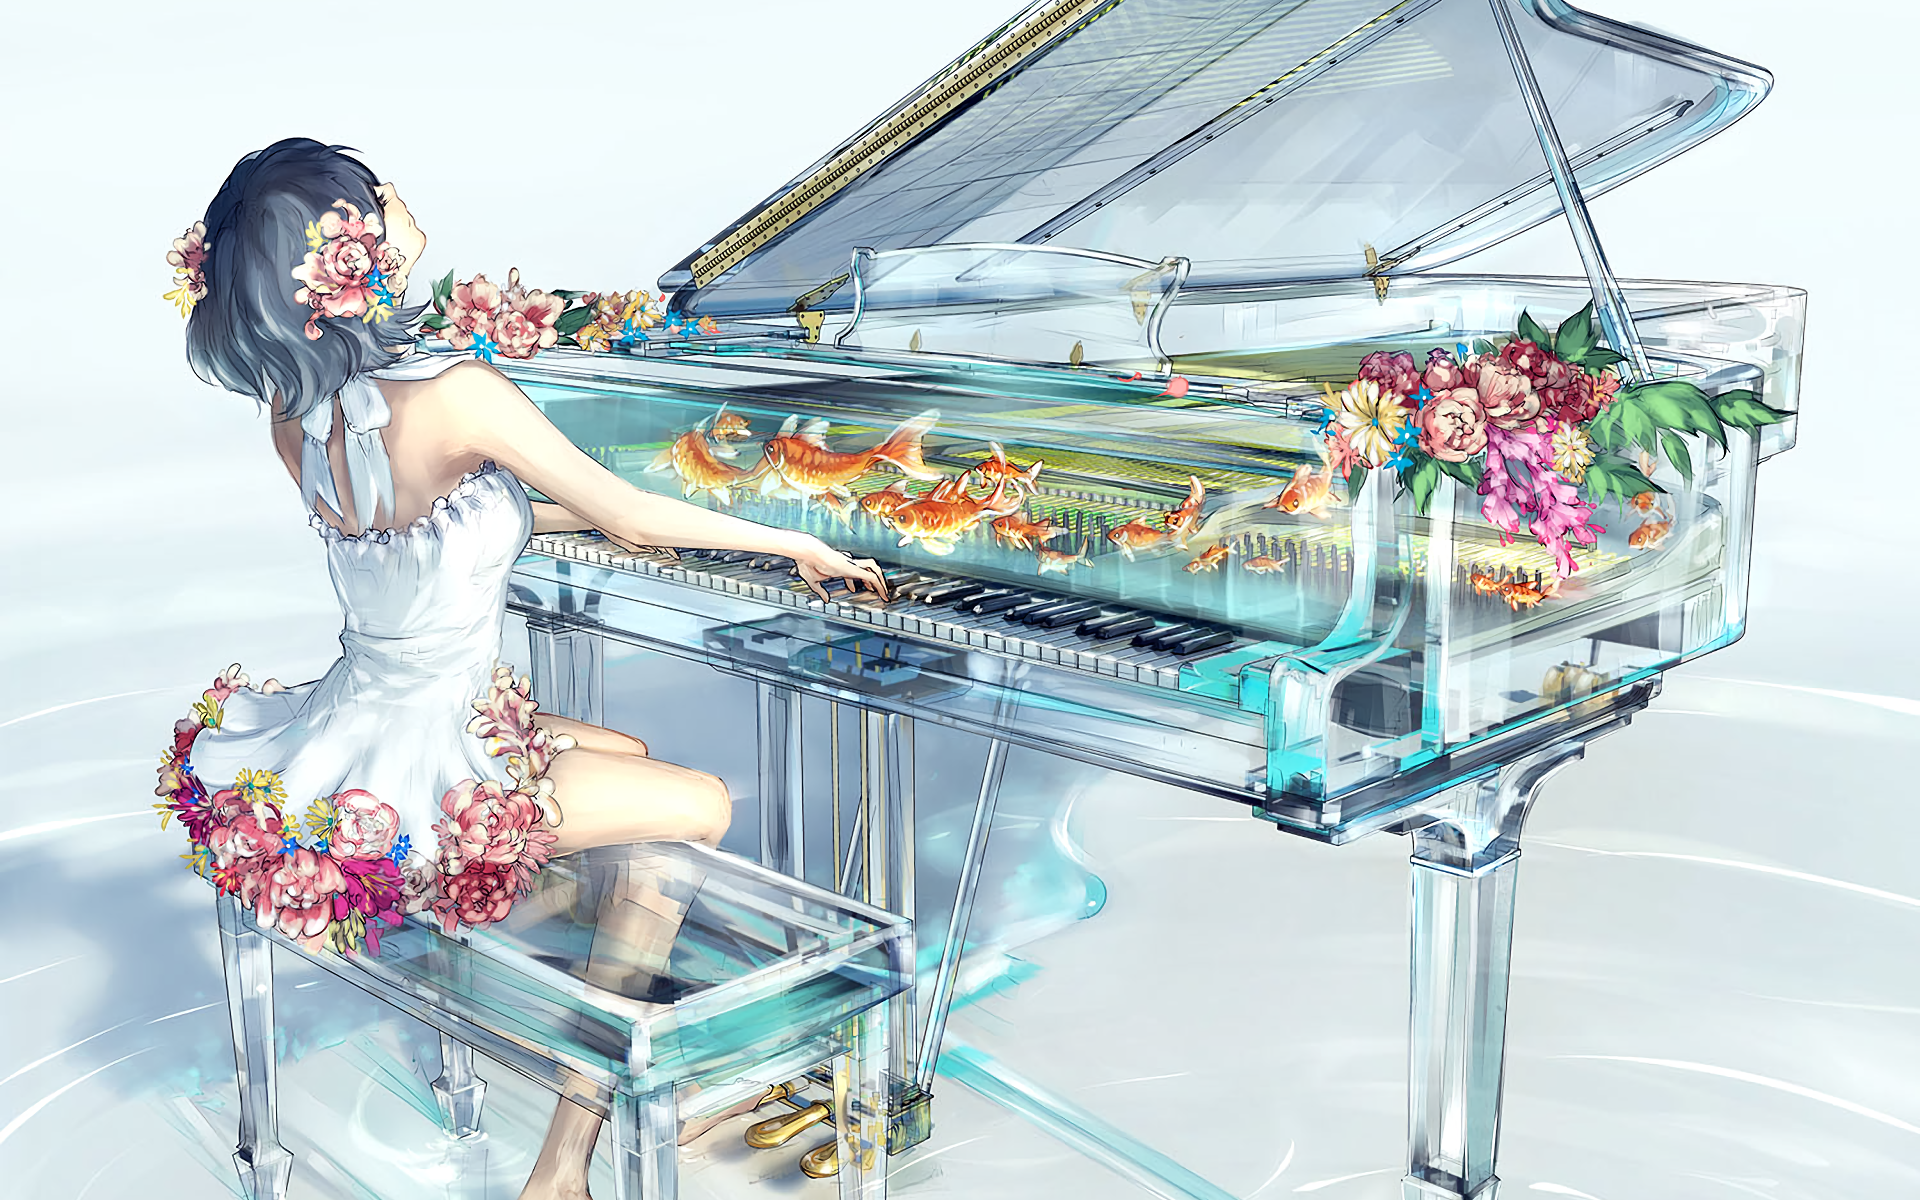 Fish Piano Girl Dress Flower Short Hair 1920x1200